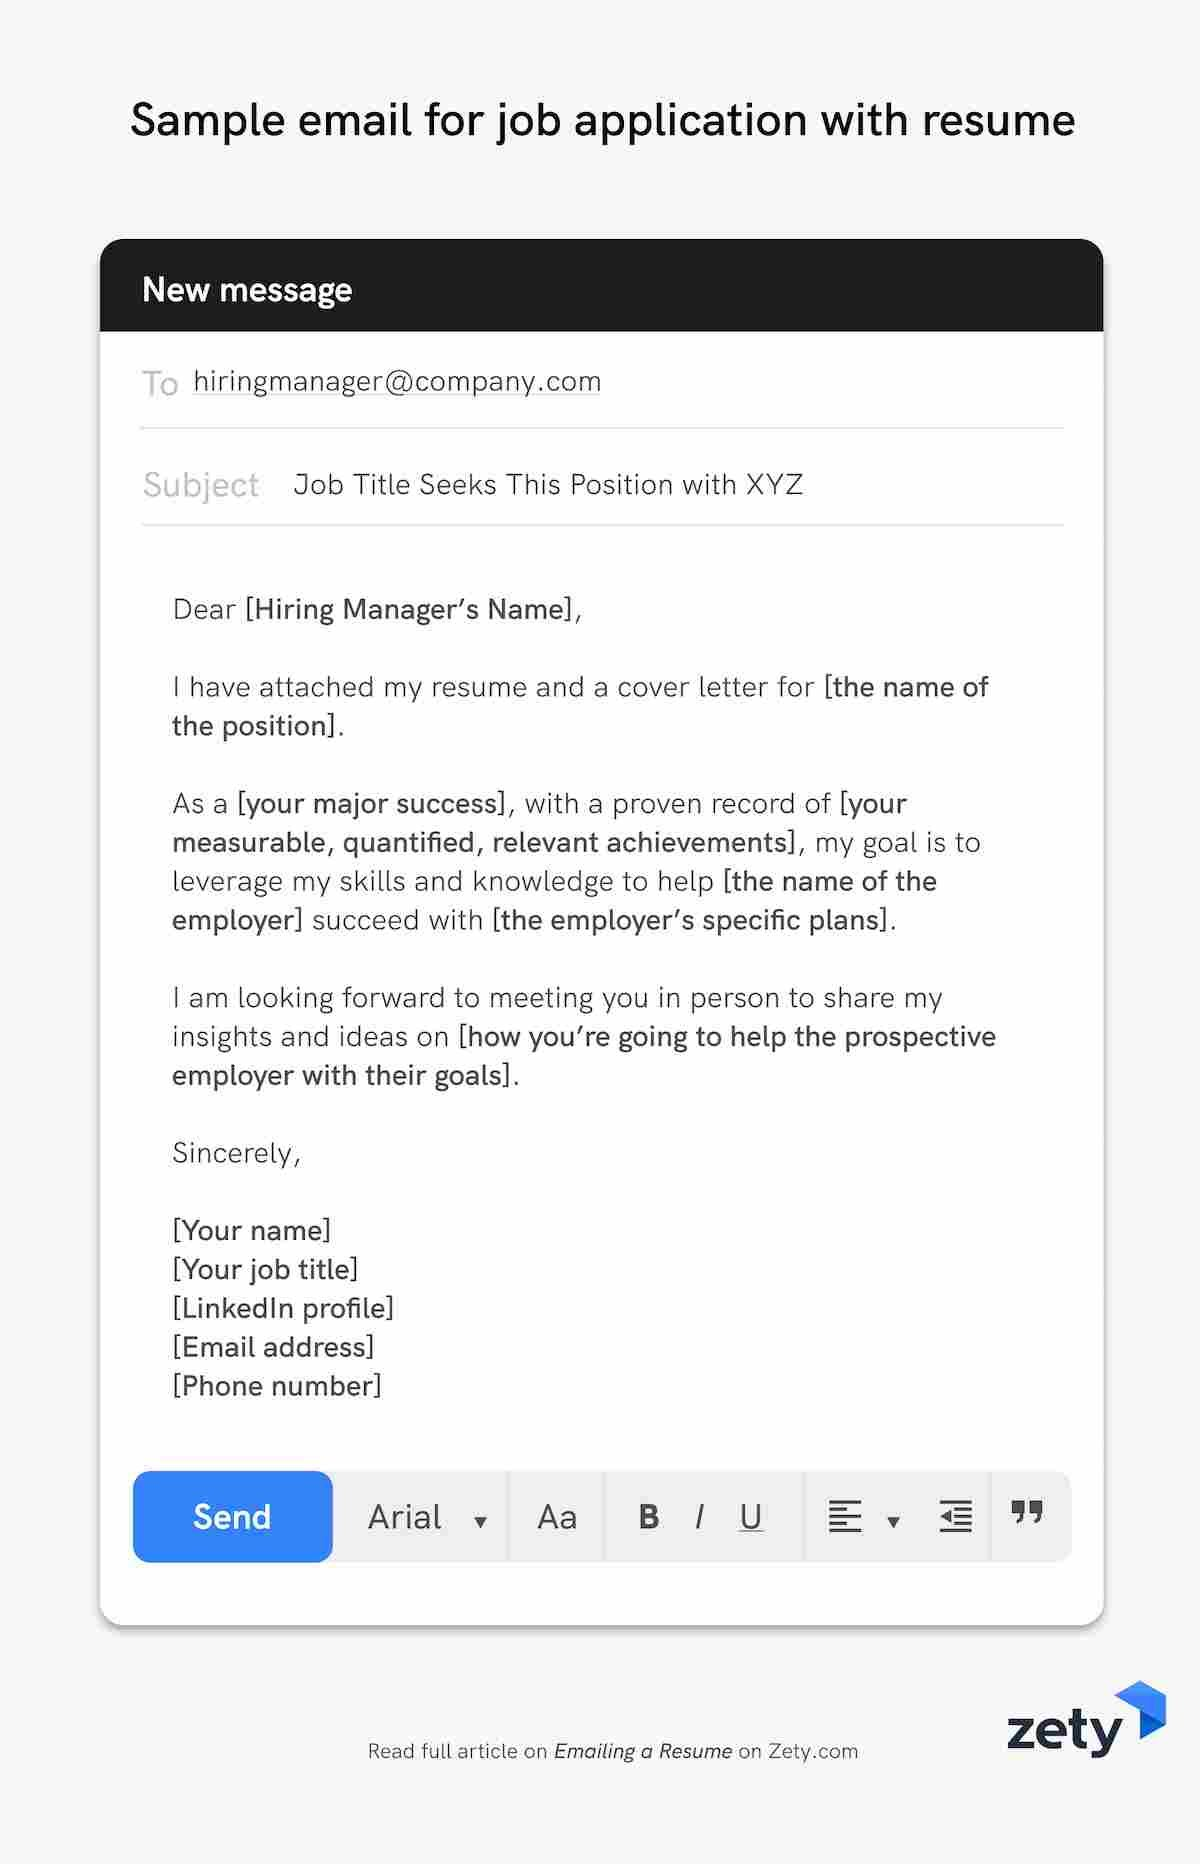 emailing resume job application email samples subject for sending examples sample with Resume Email Subject For Sending Resume Examples